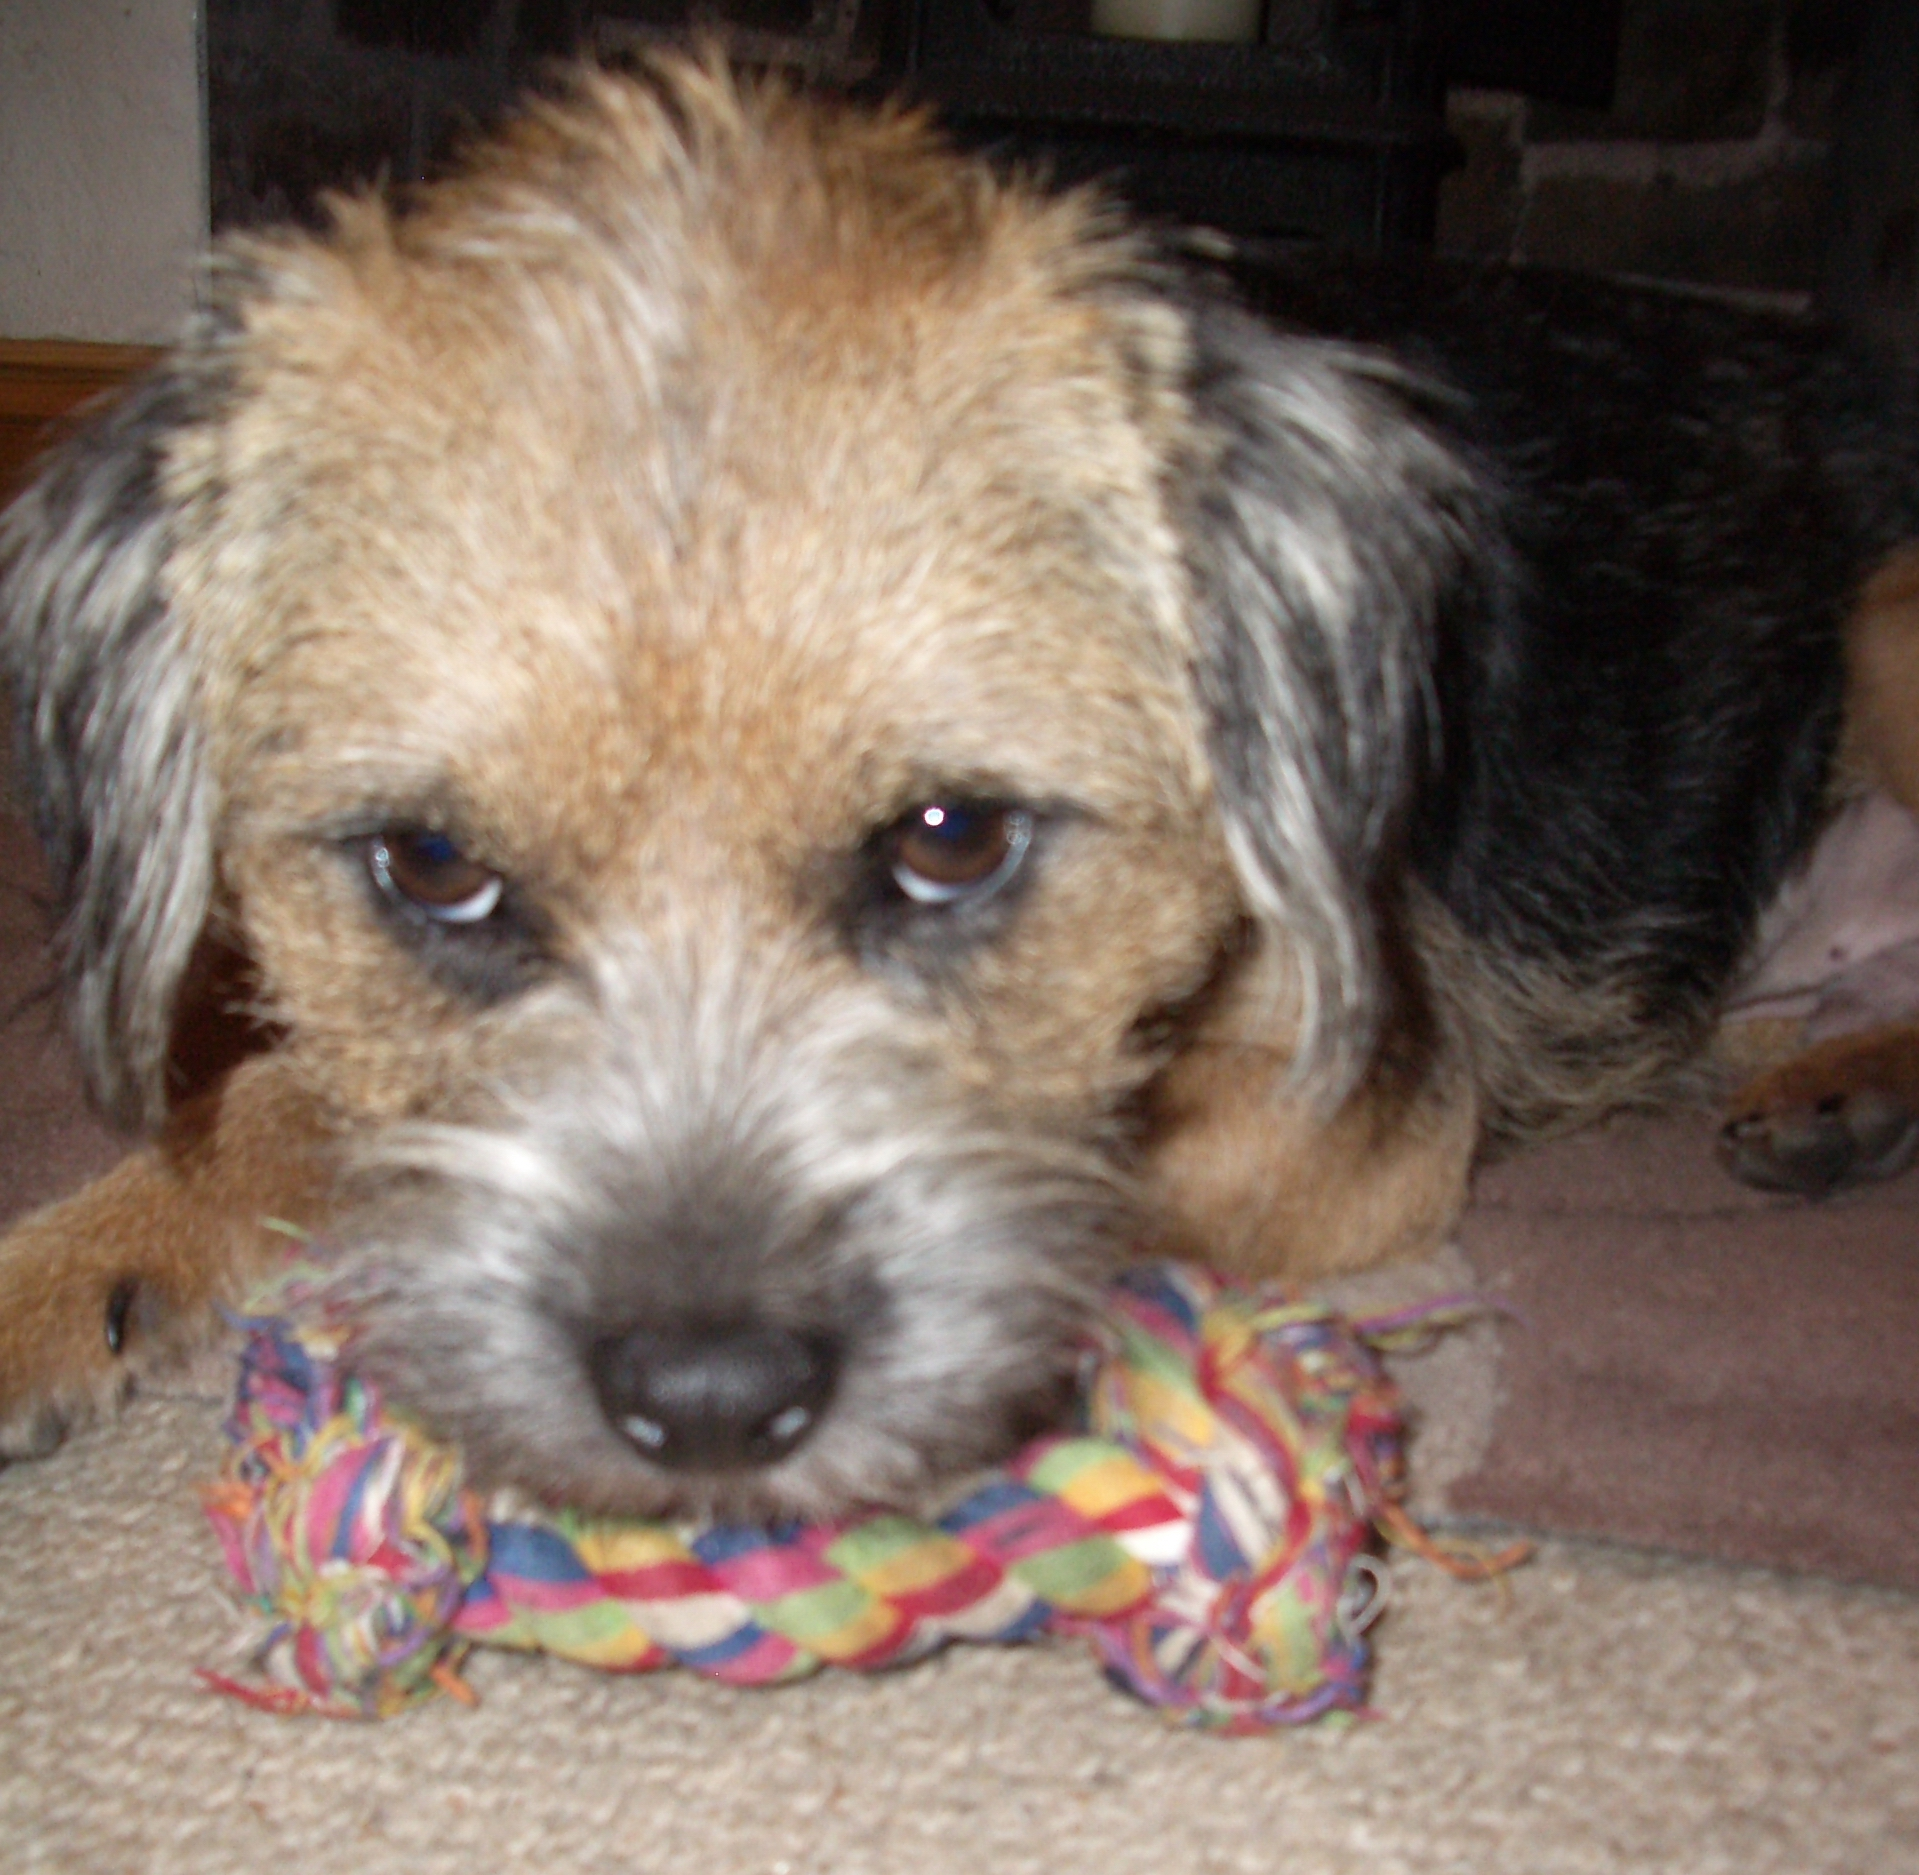 Biff the Border Terrier who works at woodenart making cat runs and